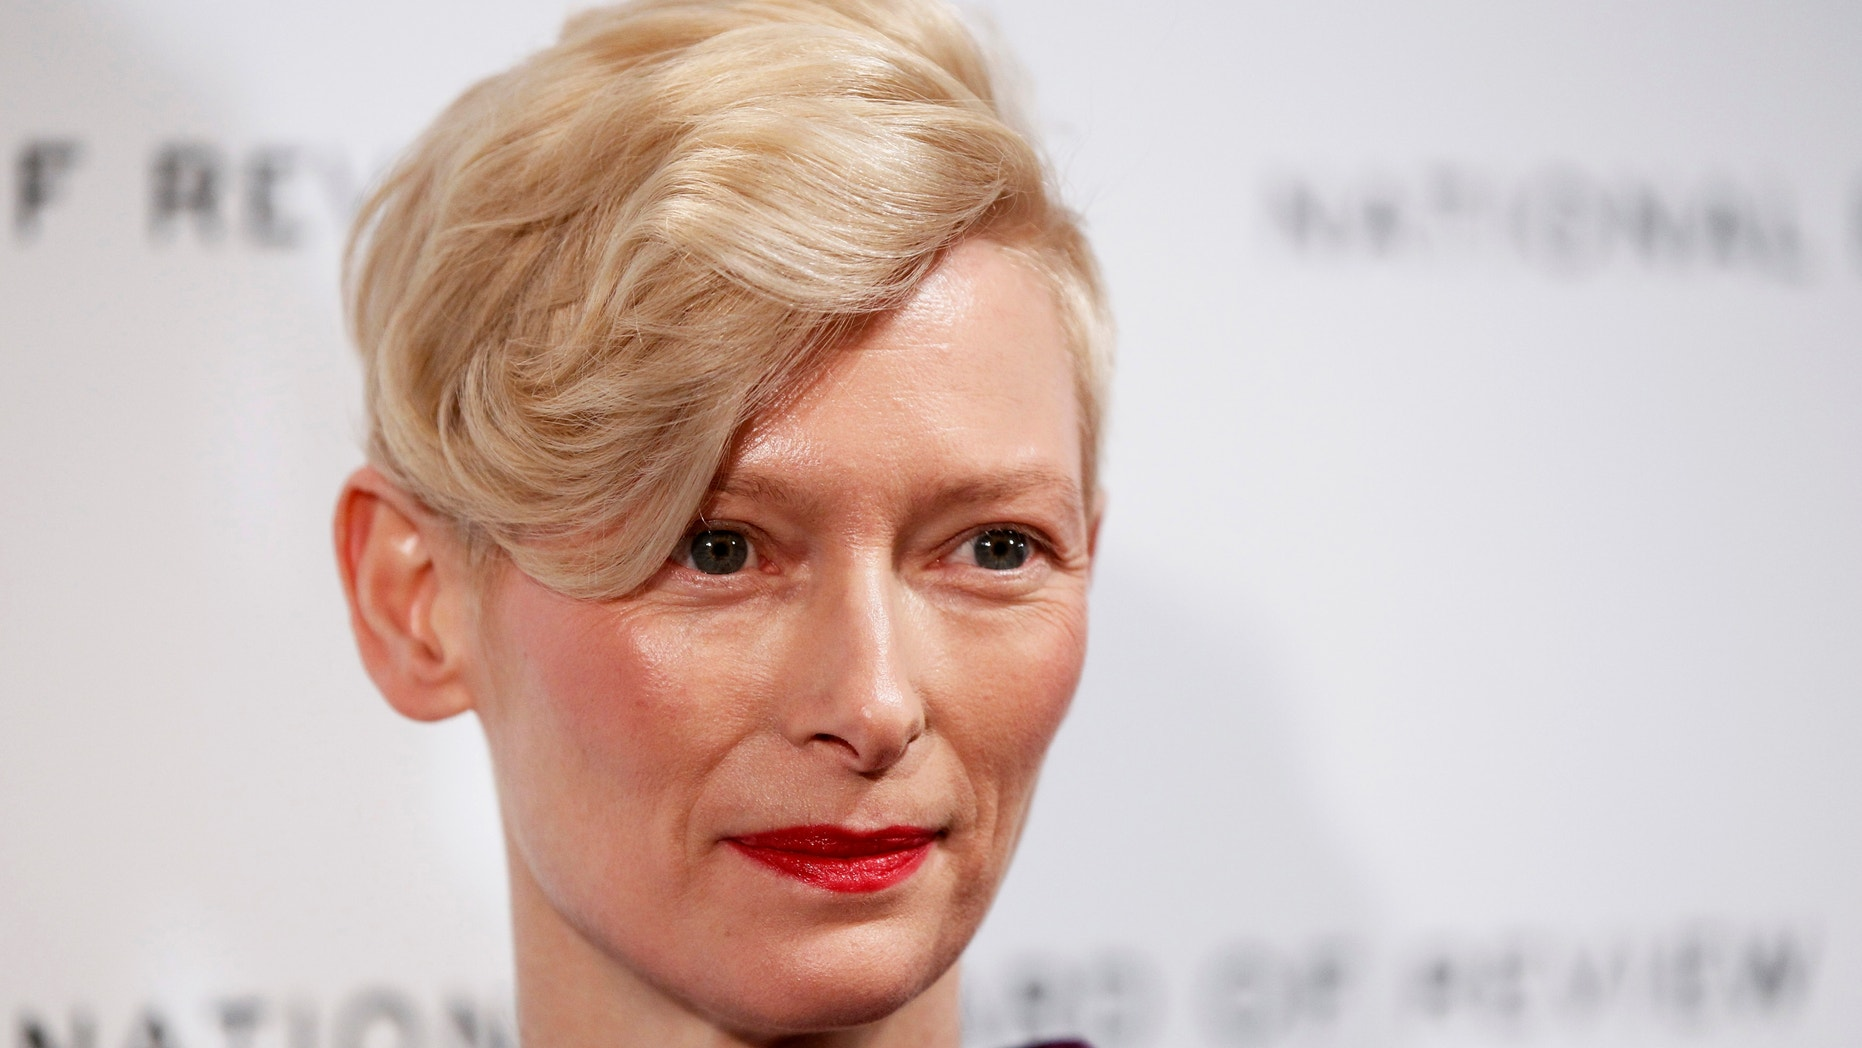 Actress Tilda Swinton arrives to accept the Best Actress award at the National Board of Review Awards Gala in New York January 10, 2012.